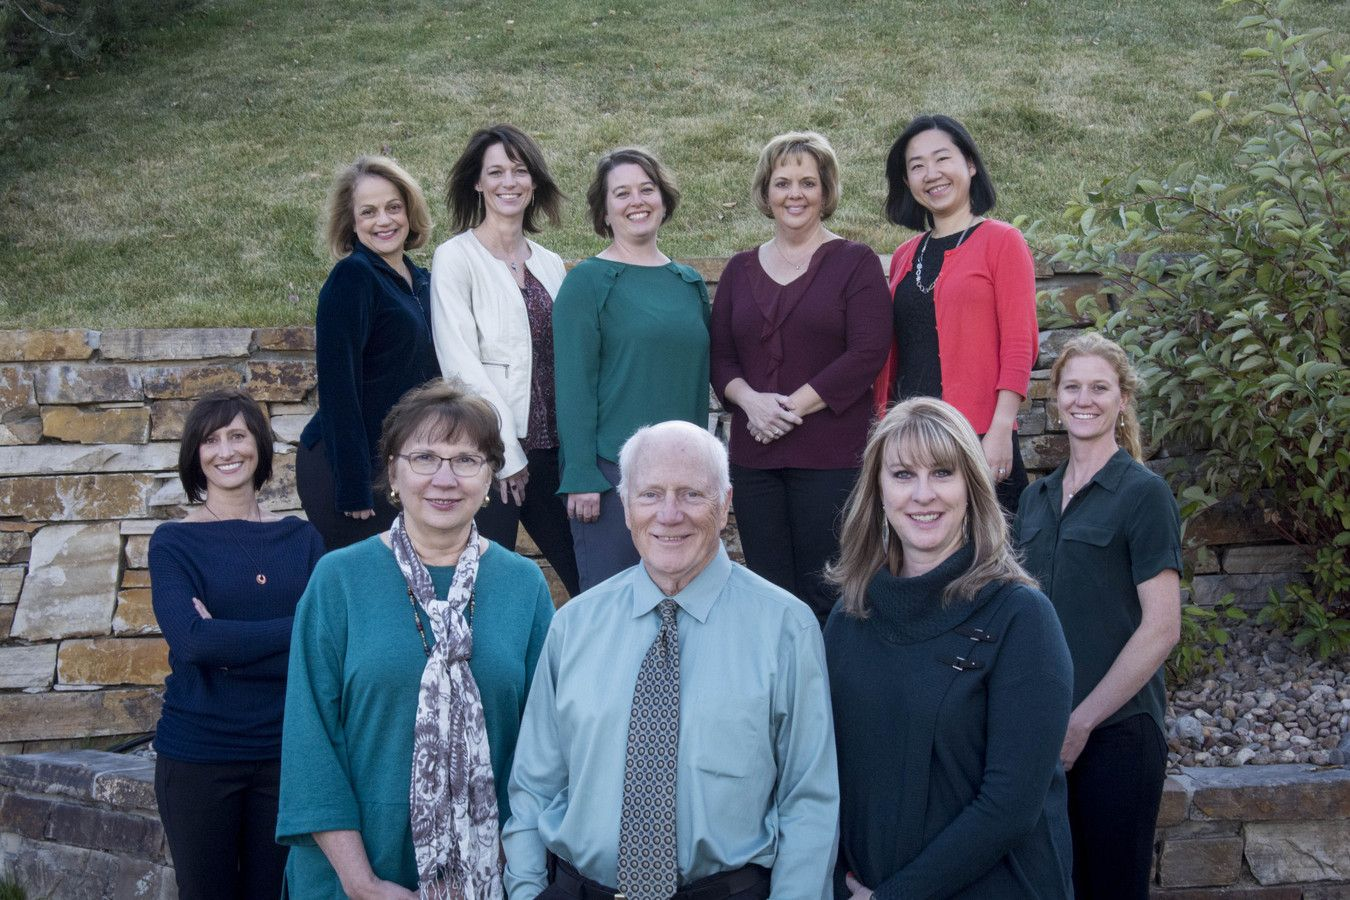 The team at Denver Fertility Albrecht Women's Care